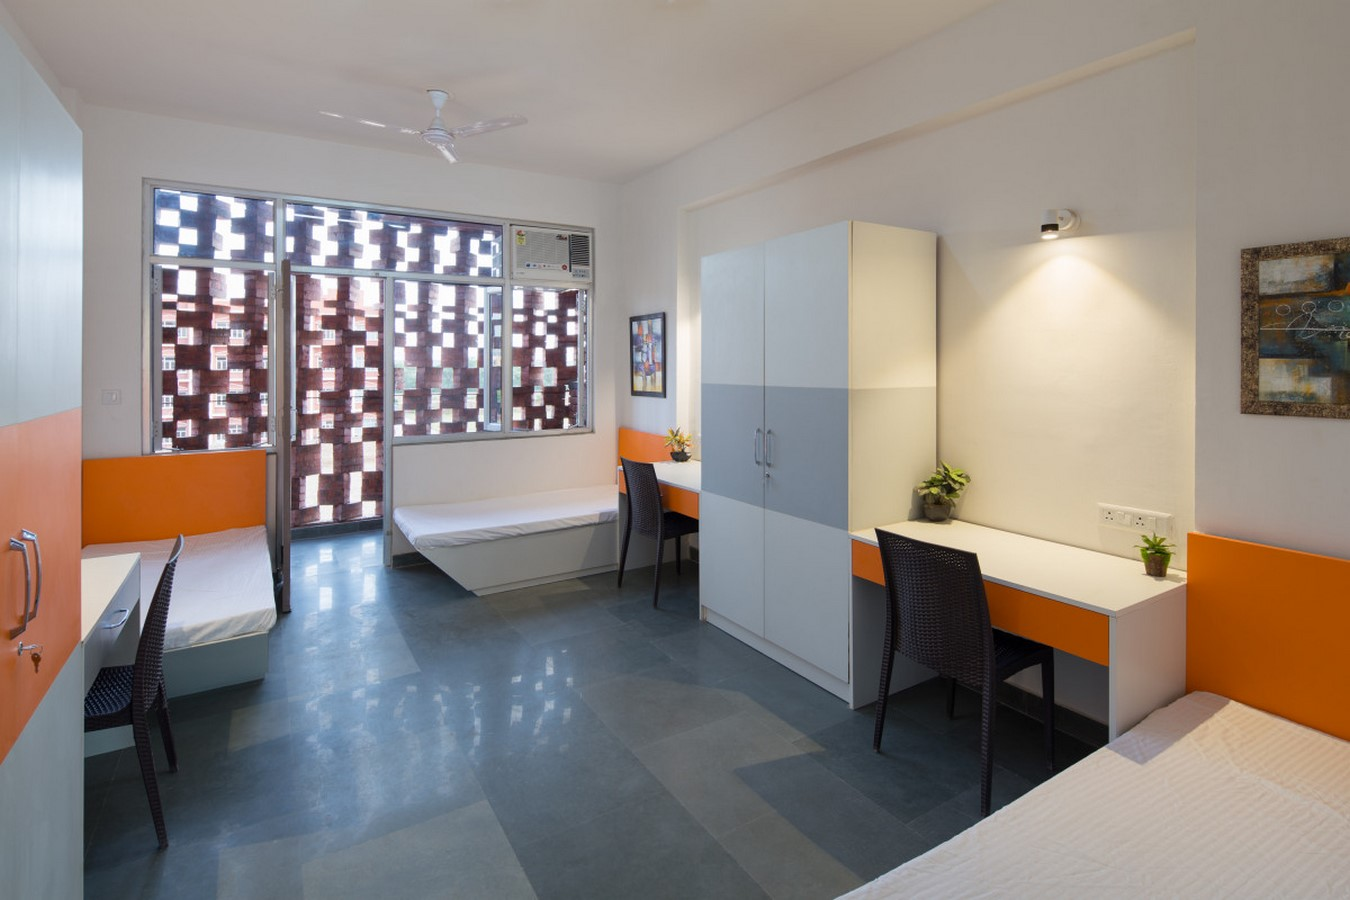 India's St. Andrews boys hostel designed with sustainability in mind by by ZED Lab - Sheet11